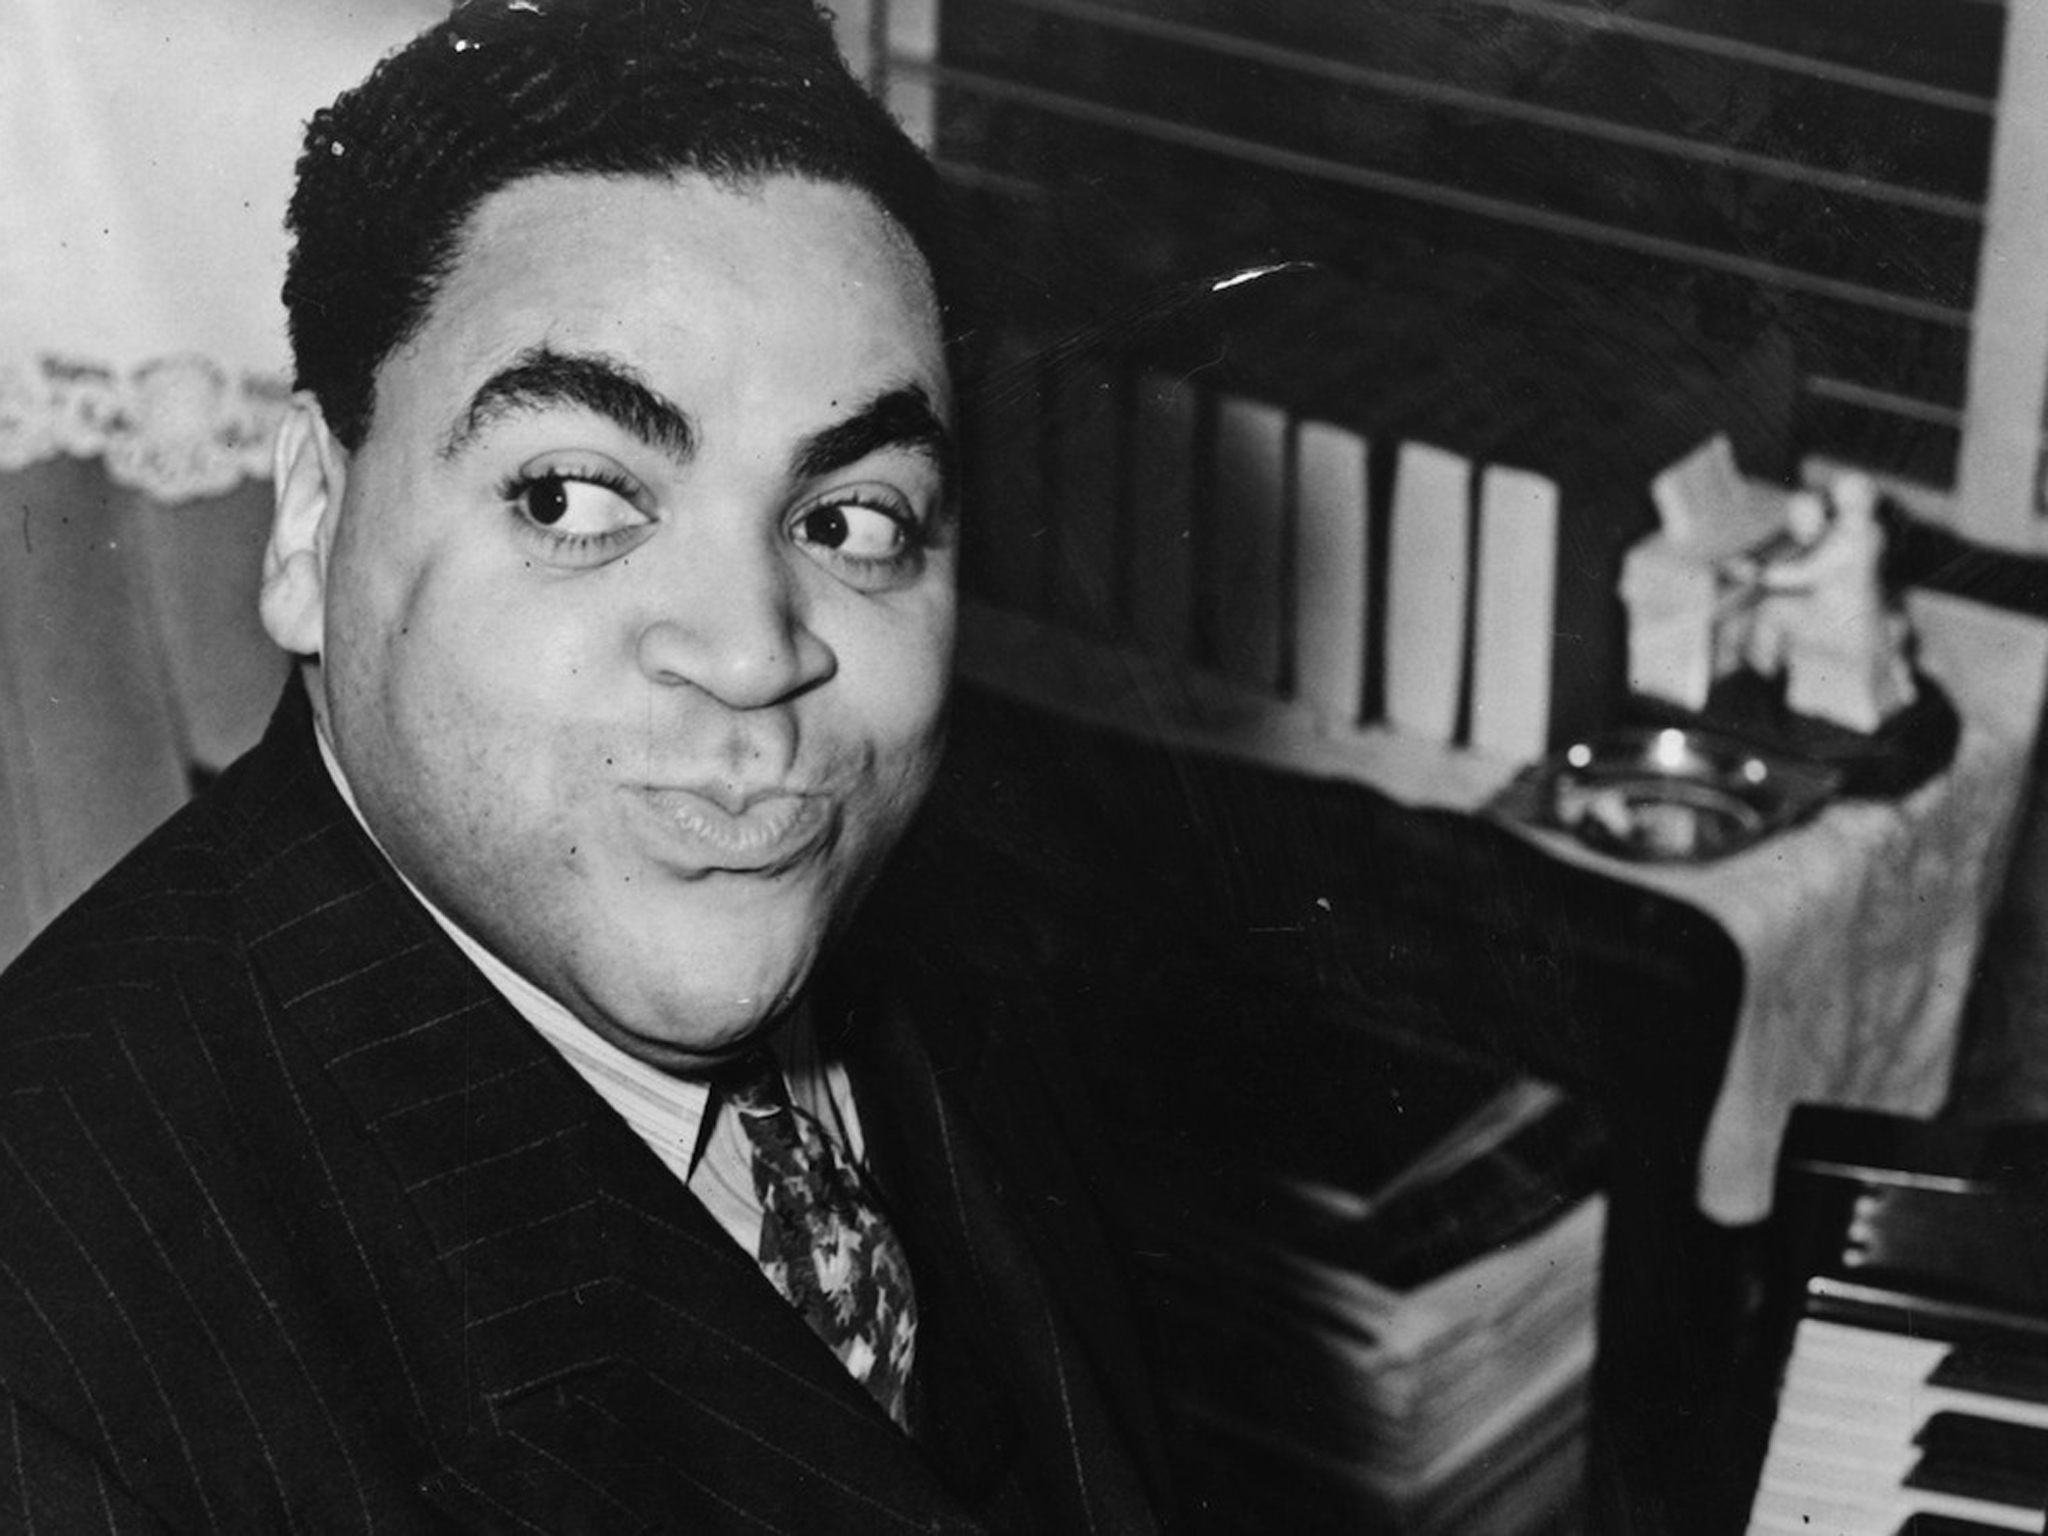 'If You're a Viper' – Fats Waller